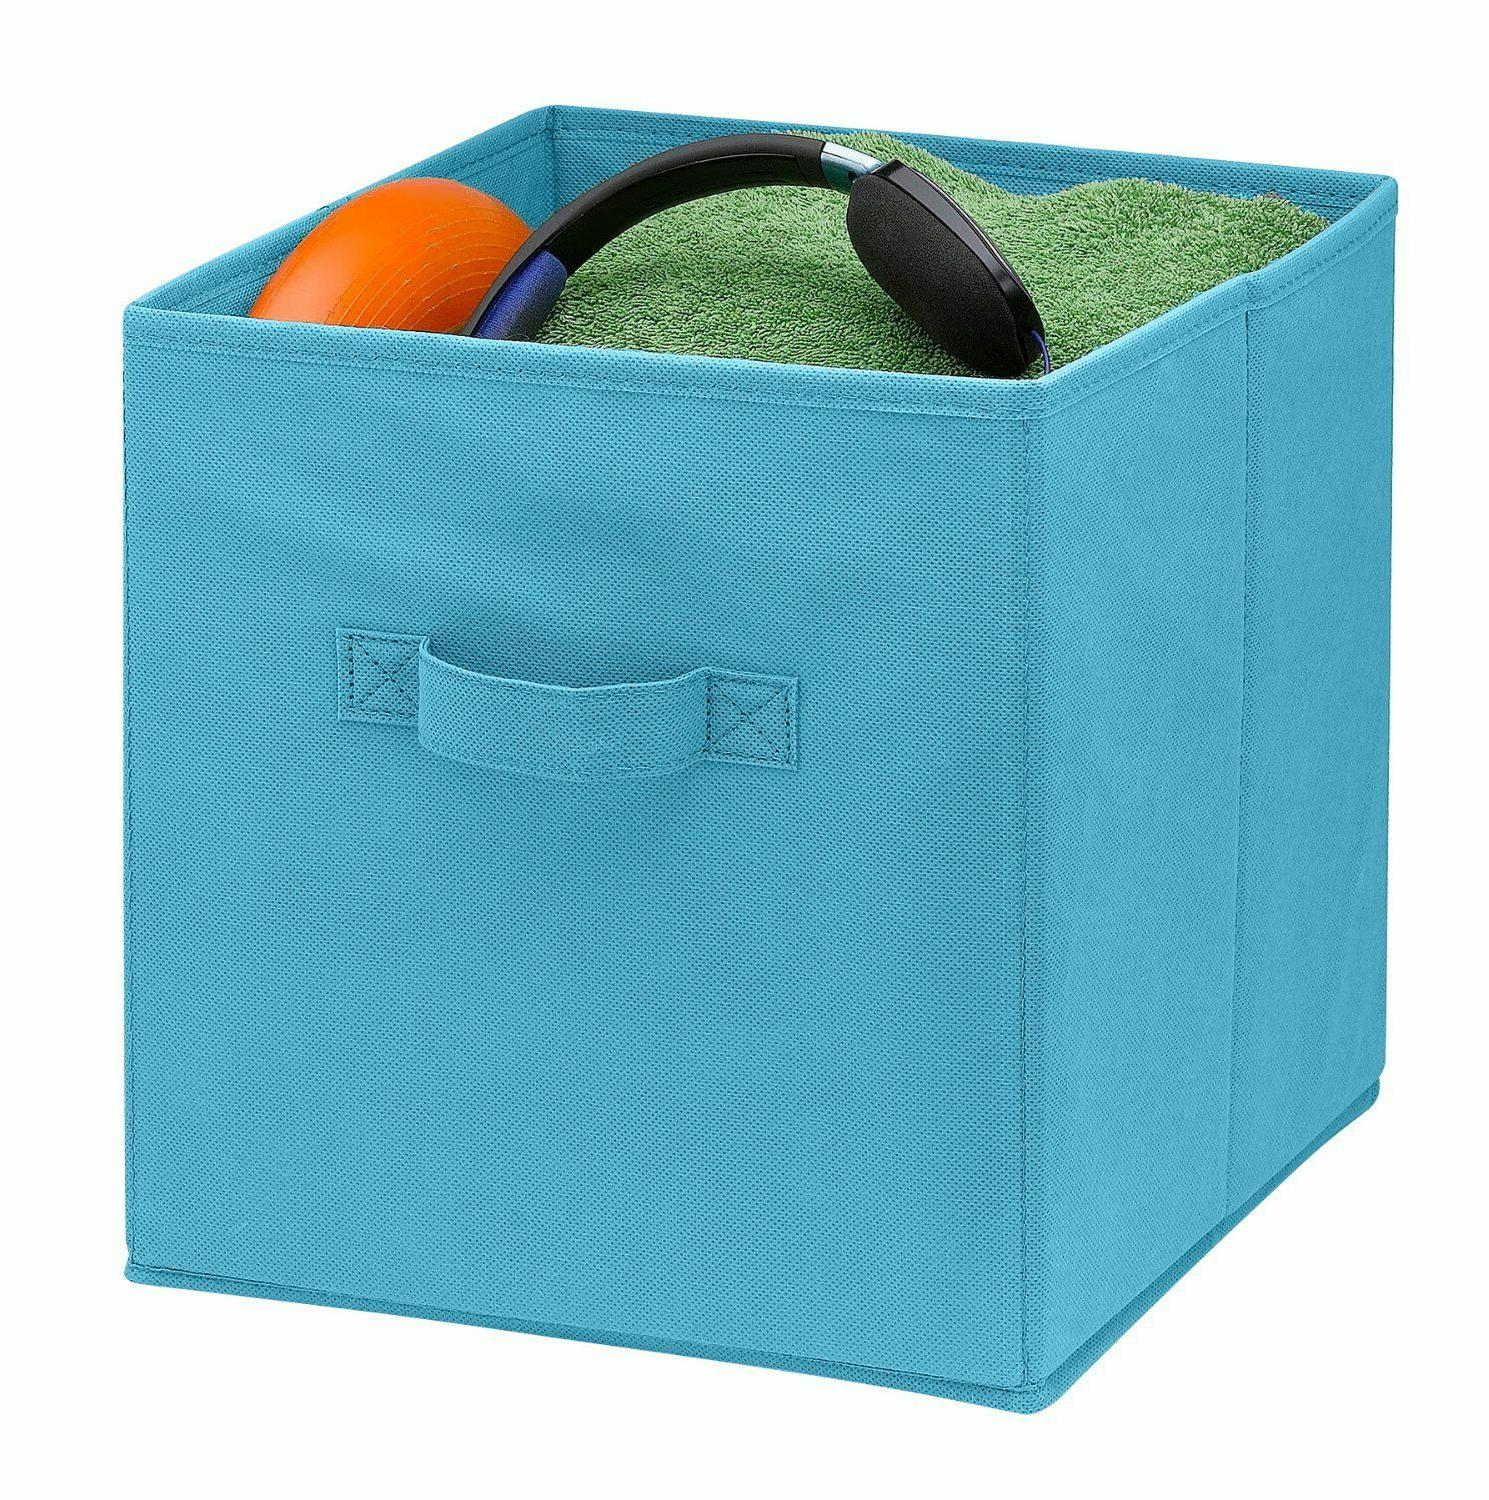 Home Collapsible Fabric Shelf Basket